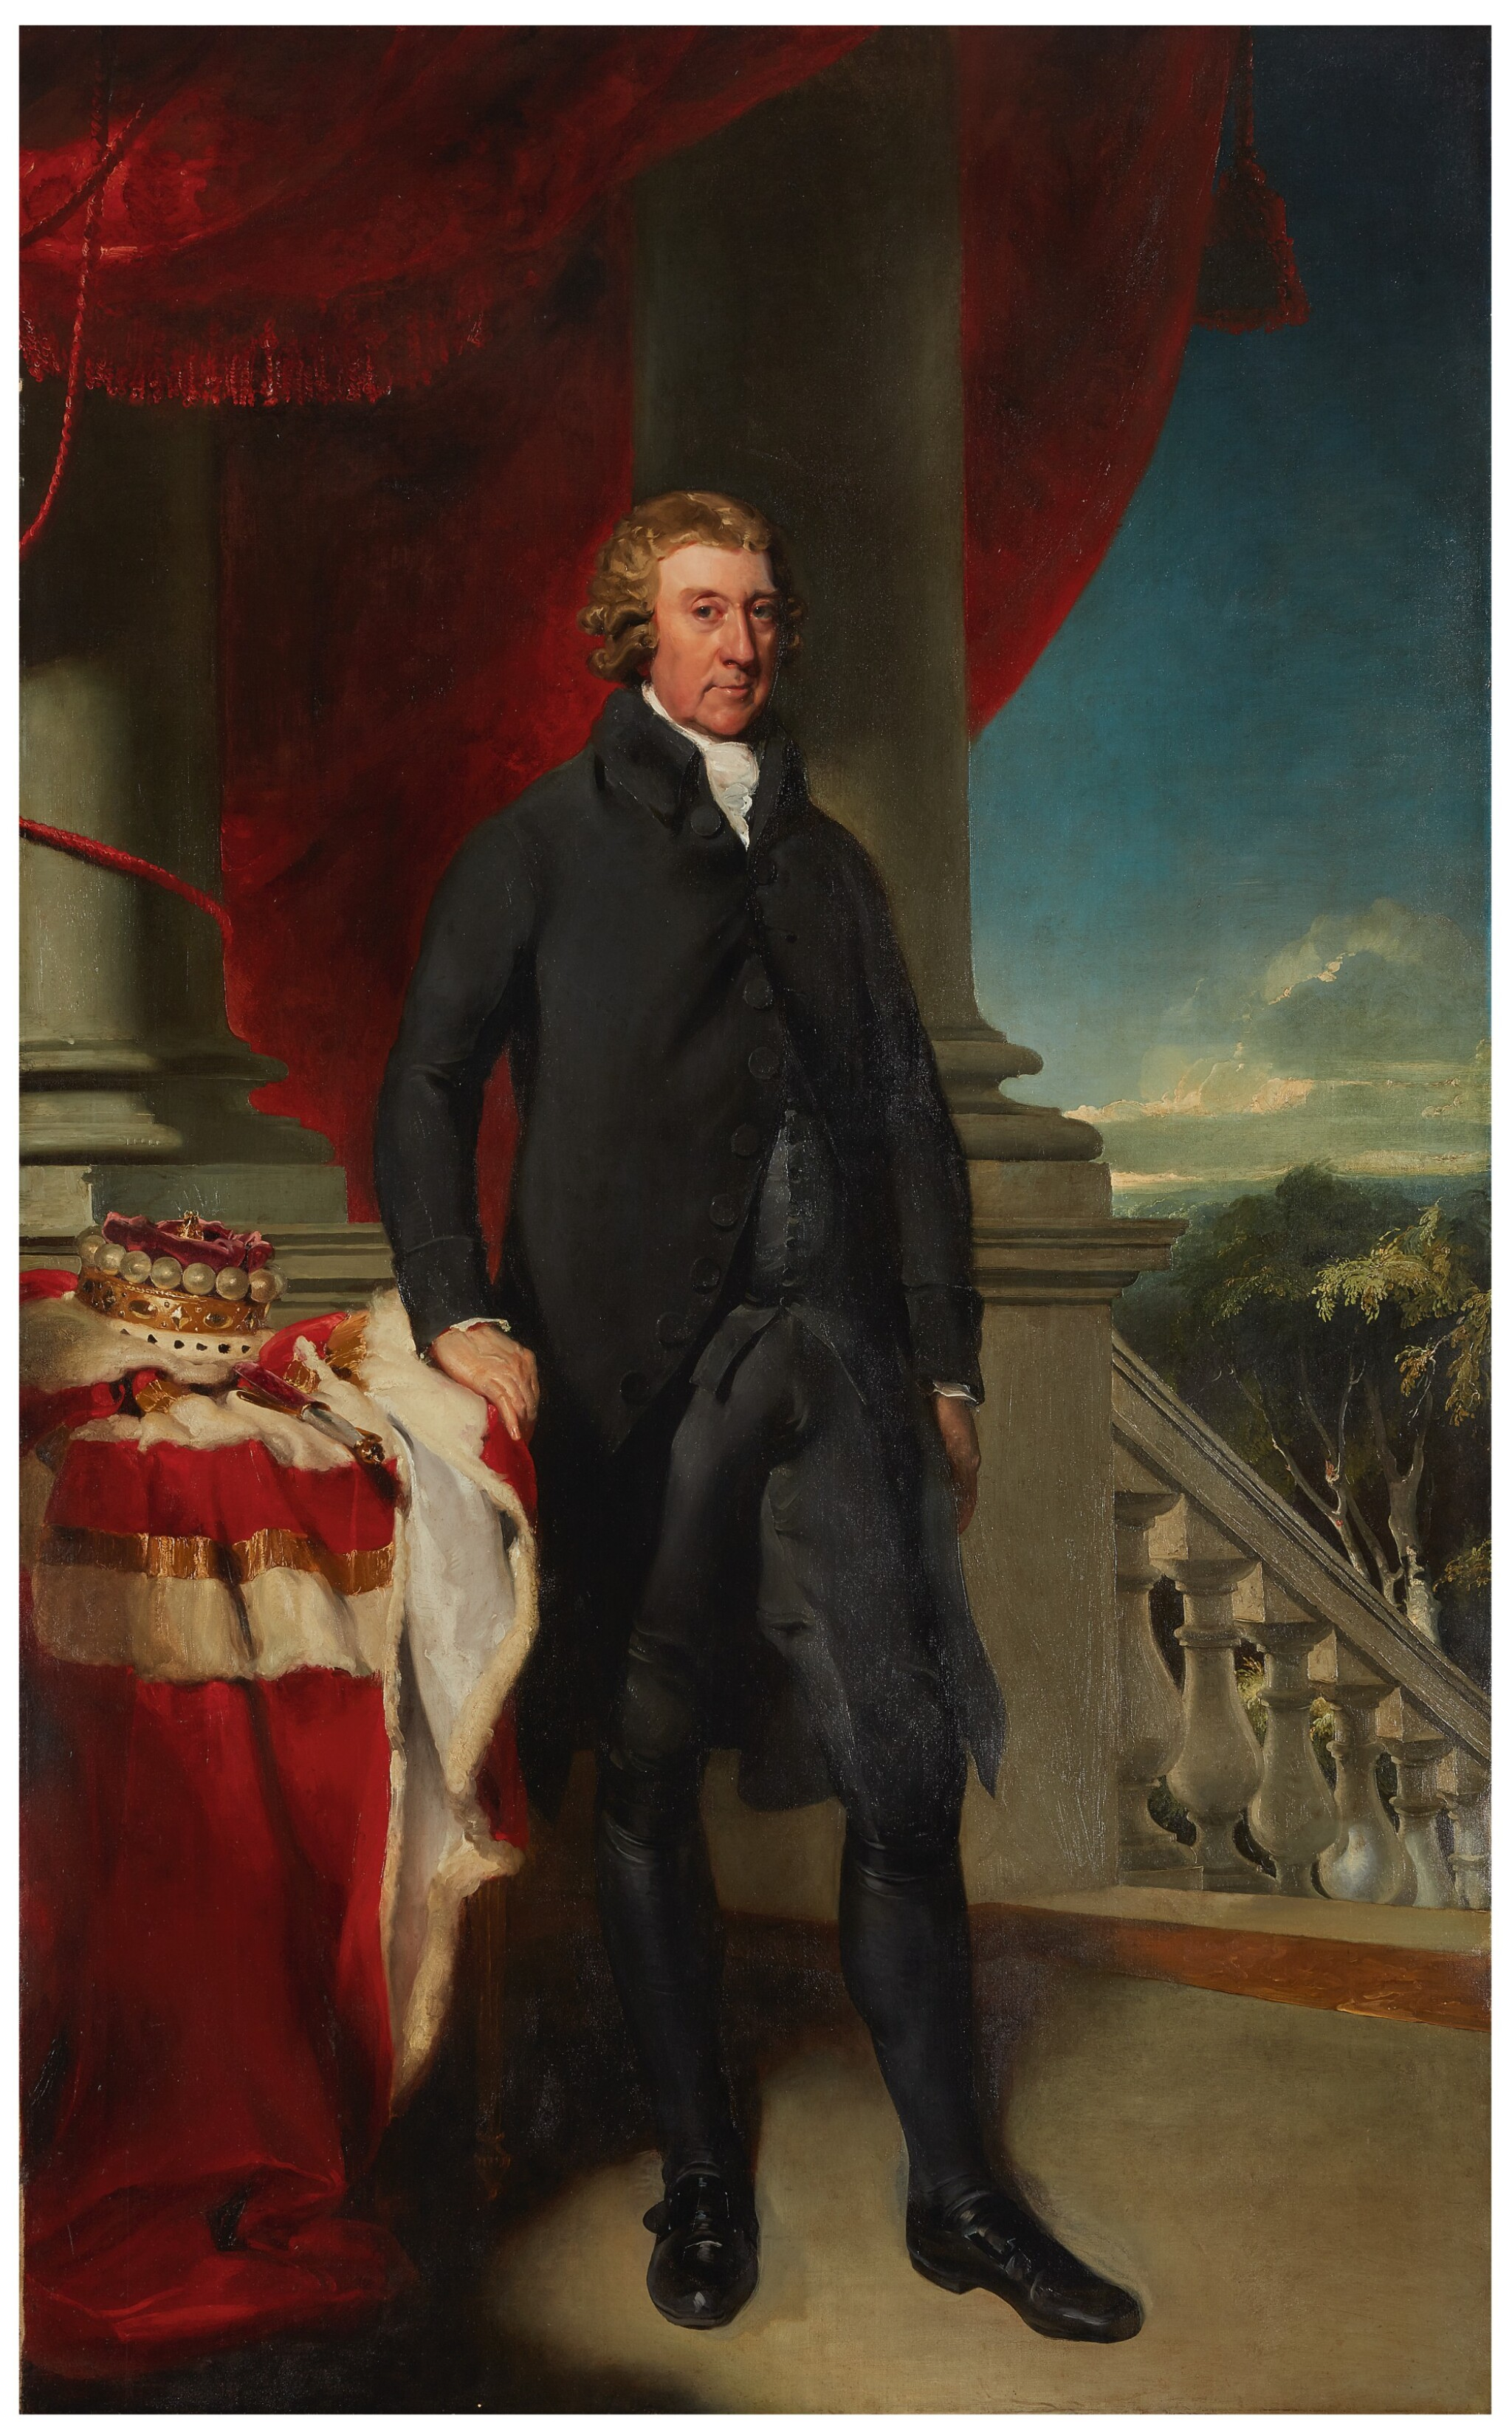 View 1 of Lot 115. SIR THOMAS LAWRENCE, P.R.A.  |  PORTRAIT OF THOMAS DAWSON, 1ST VISCOUNT CREMORNE, FULL LENGTH, WITH HIS HAND RESTING ON A TABLE.